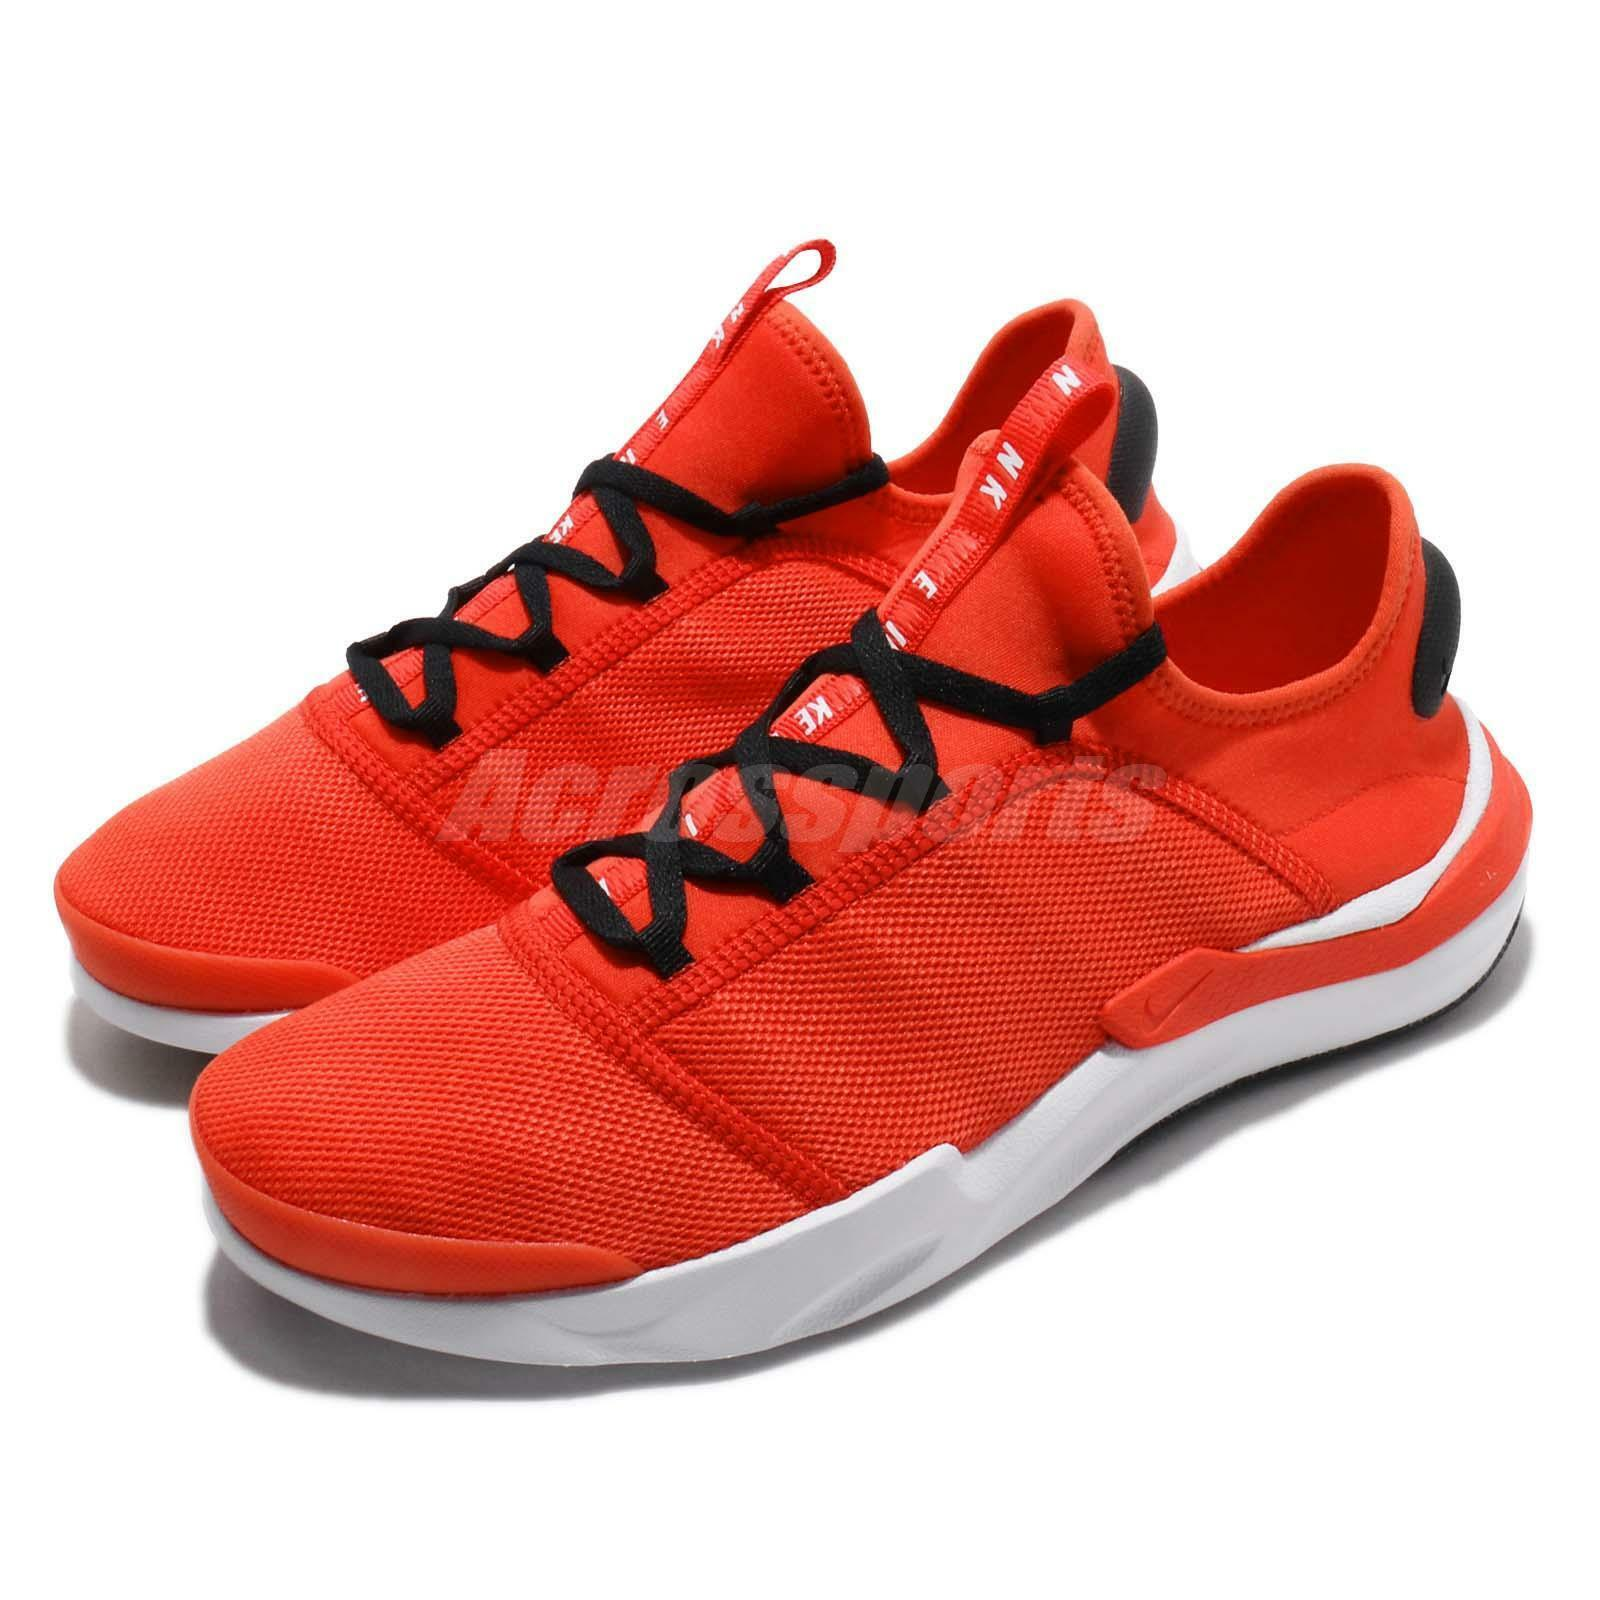 Nike Shift One Habablack Red White Men Running Casual shoes Sneakers AO1733-601